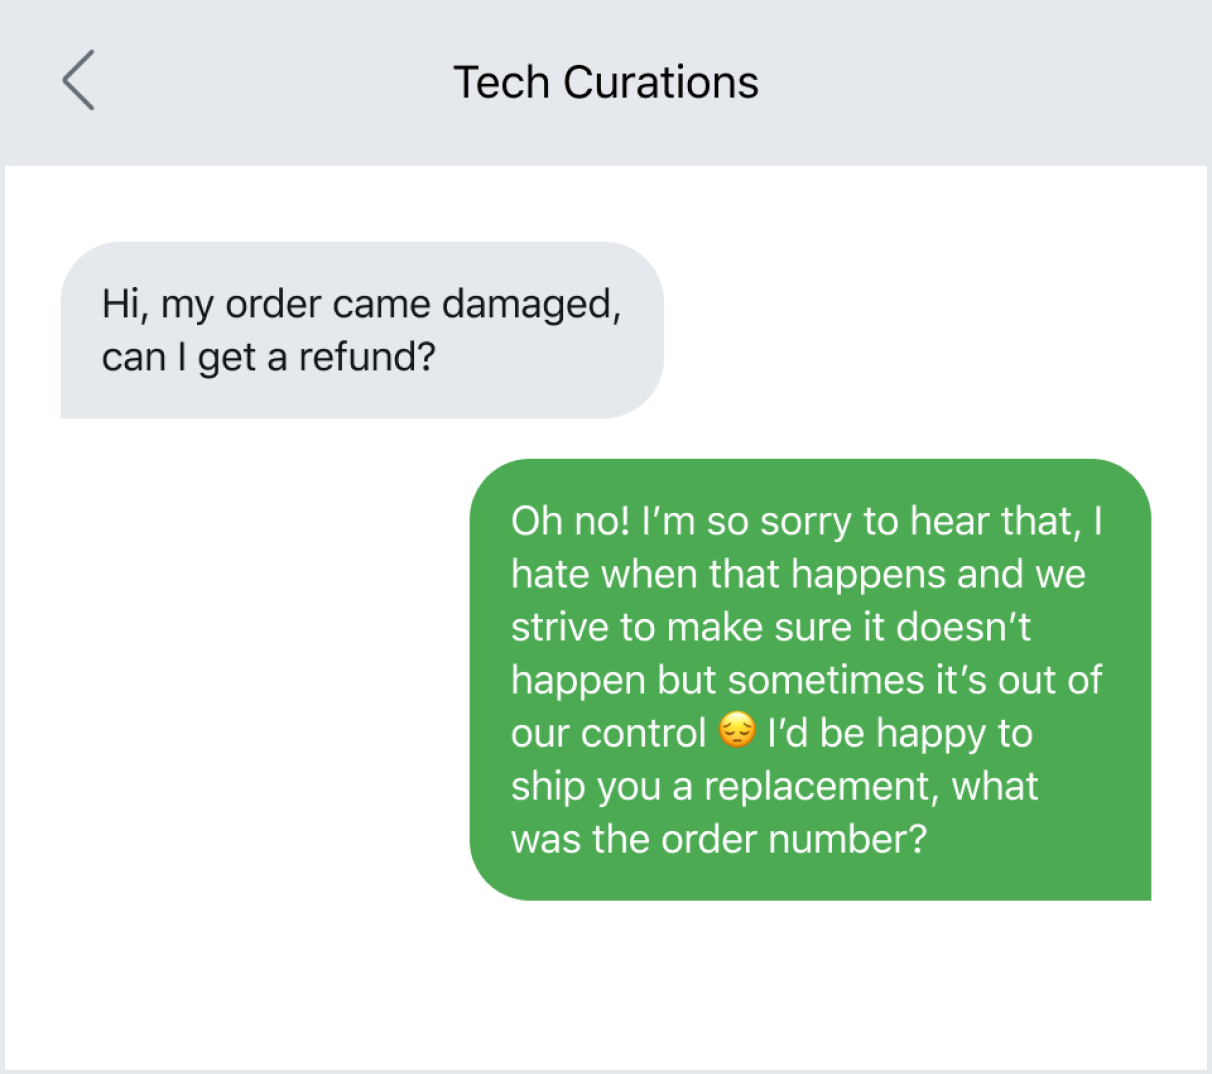 Example of focusing on human interacting in customer service texting